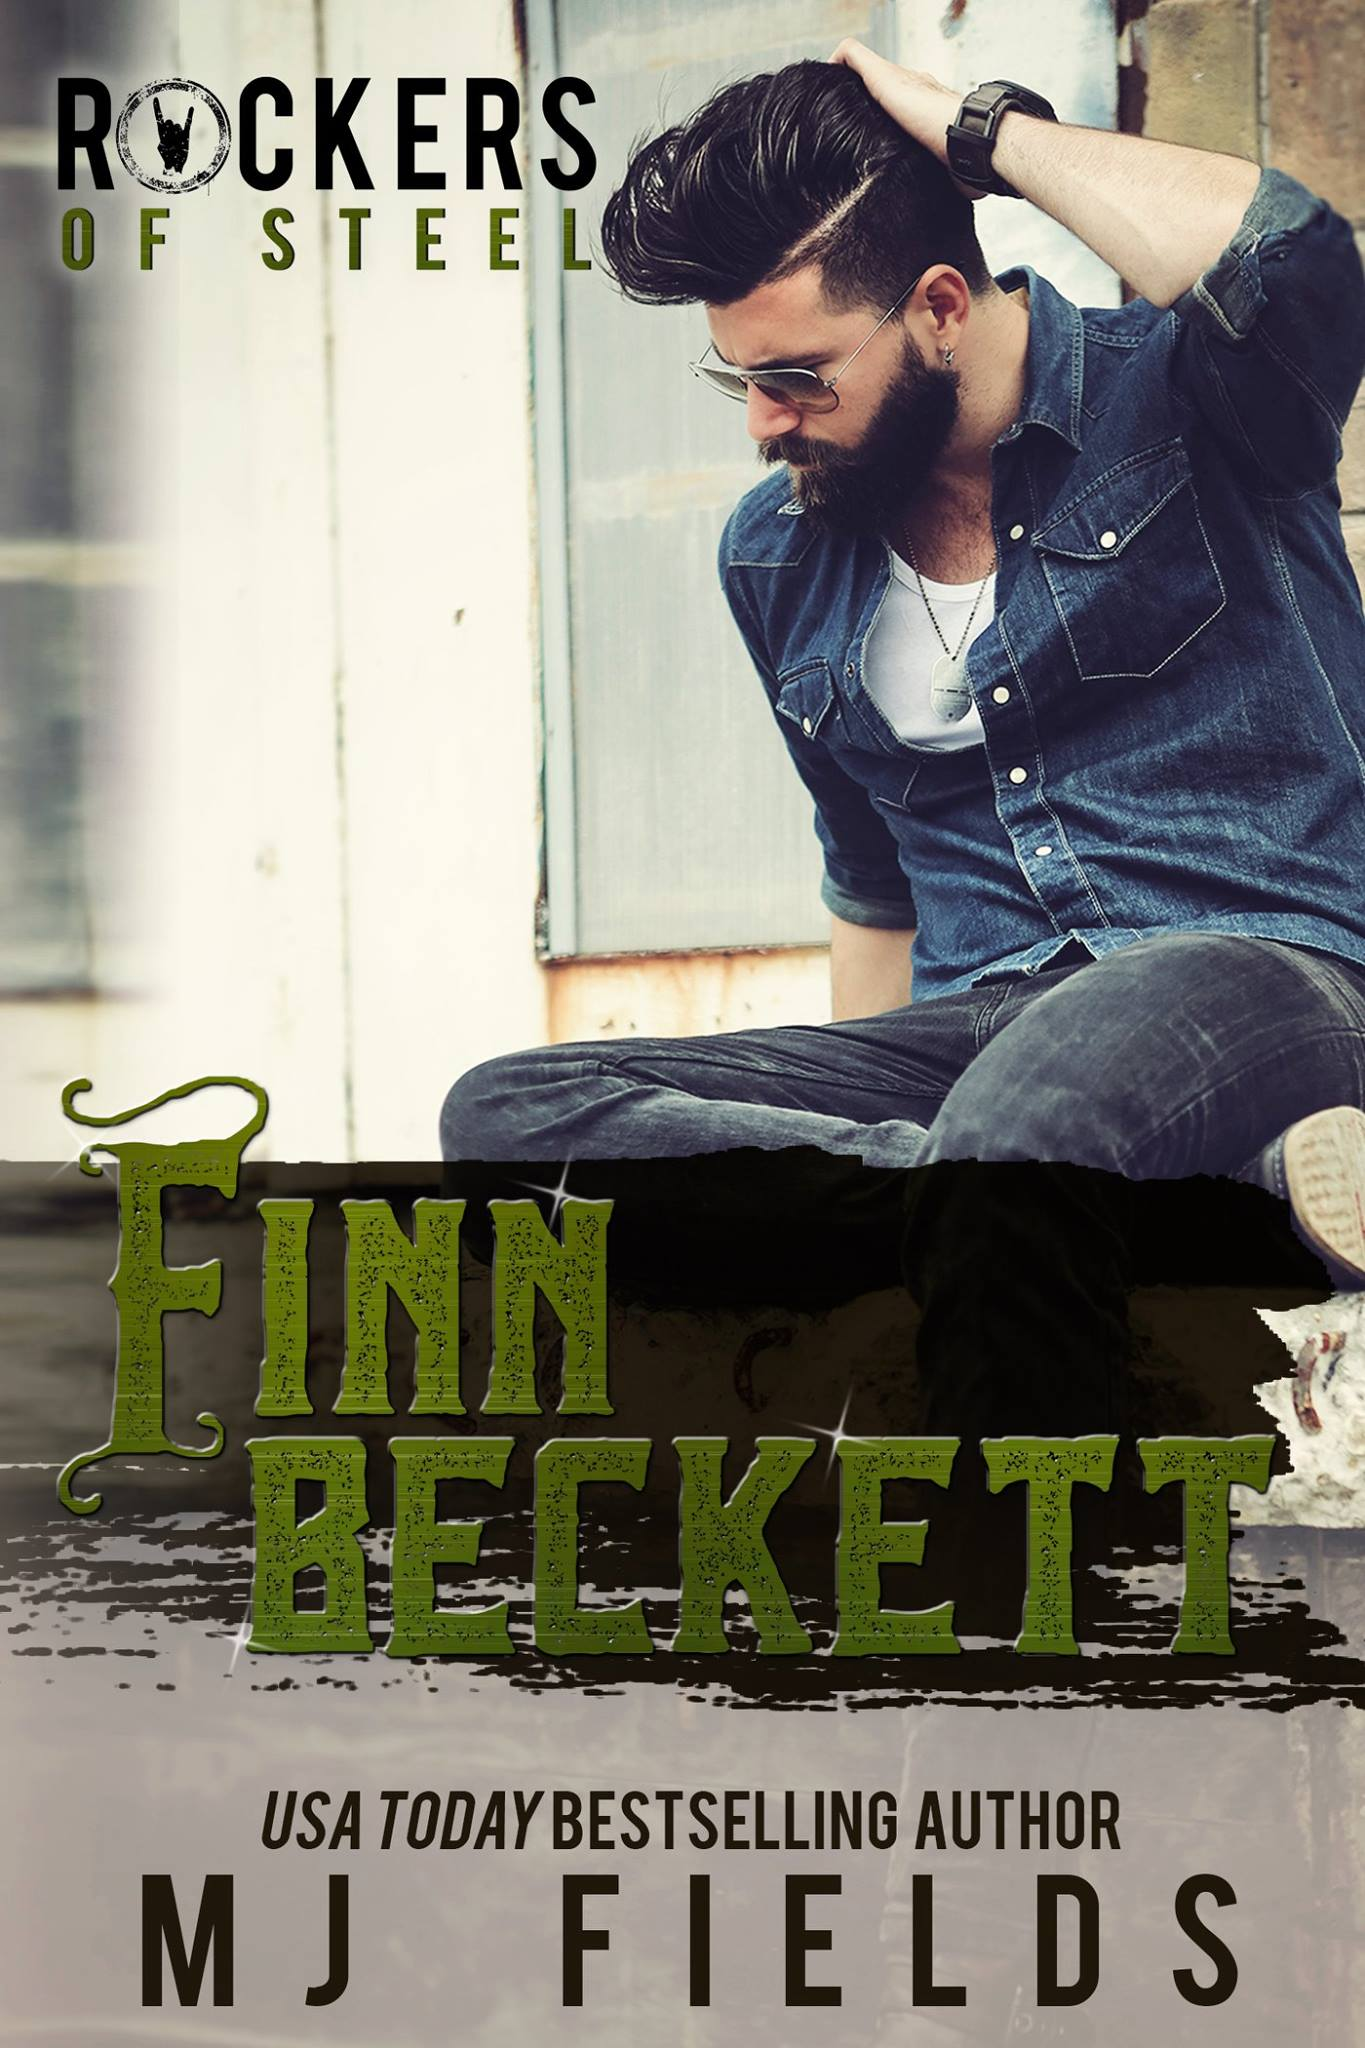 Cover Reveal: Finn Beckett (The Rockers of Steel, Book 2)